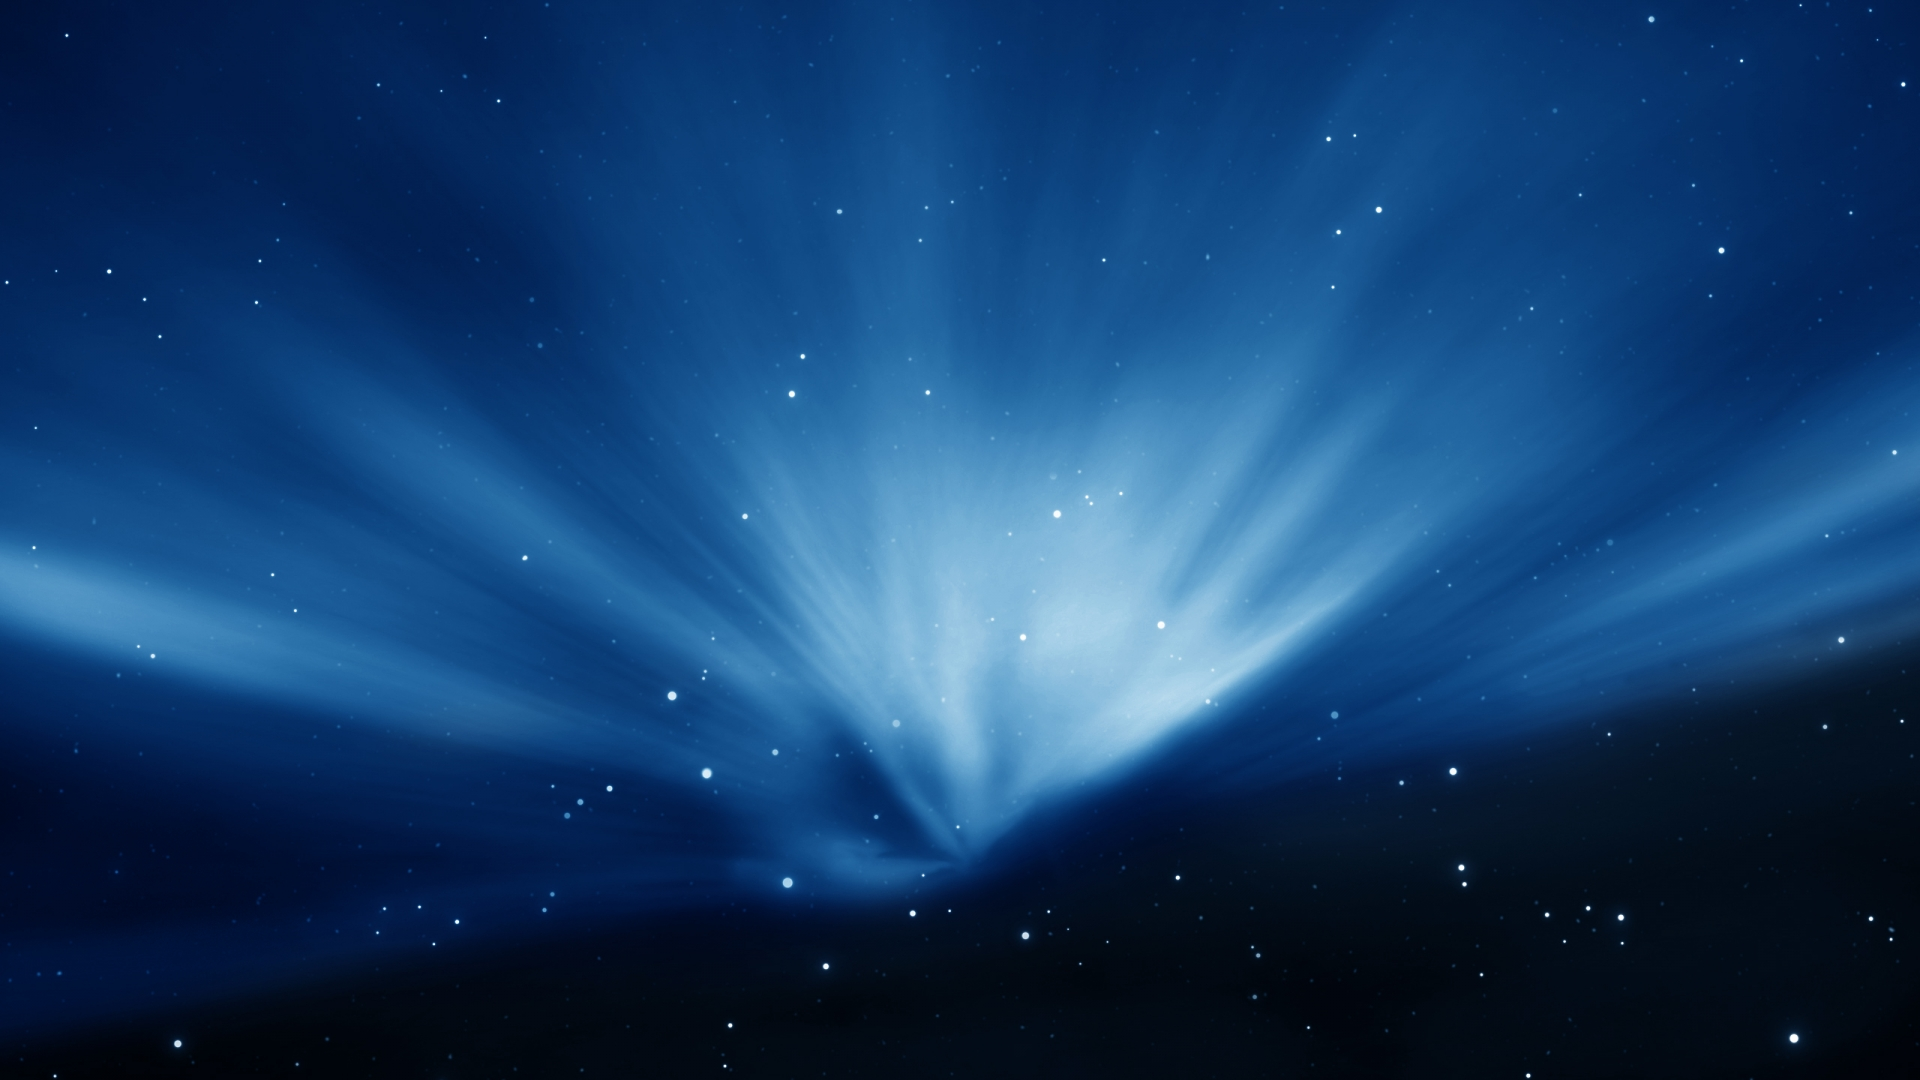 Mac OS X Space Wallpaper